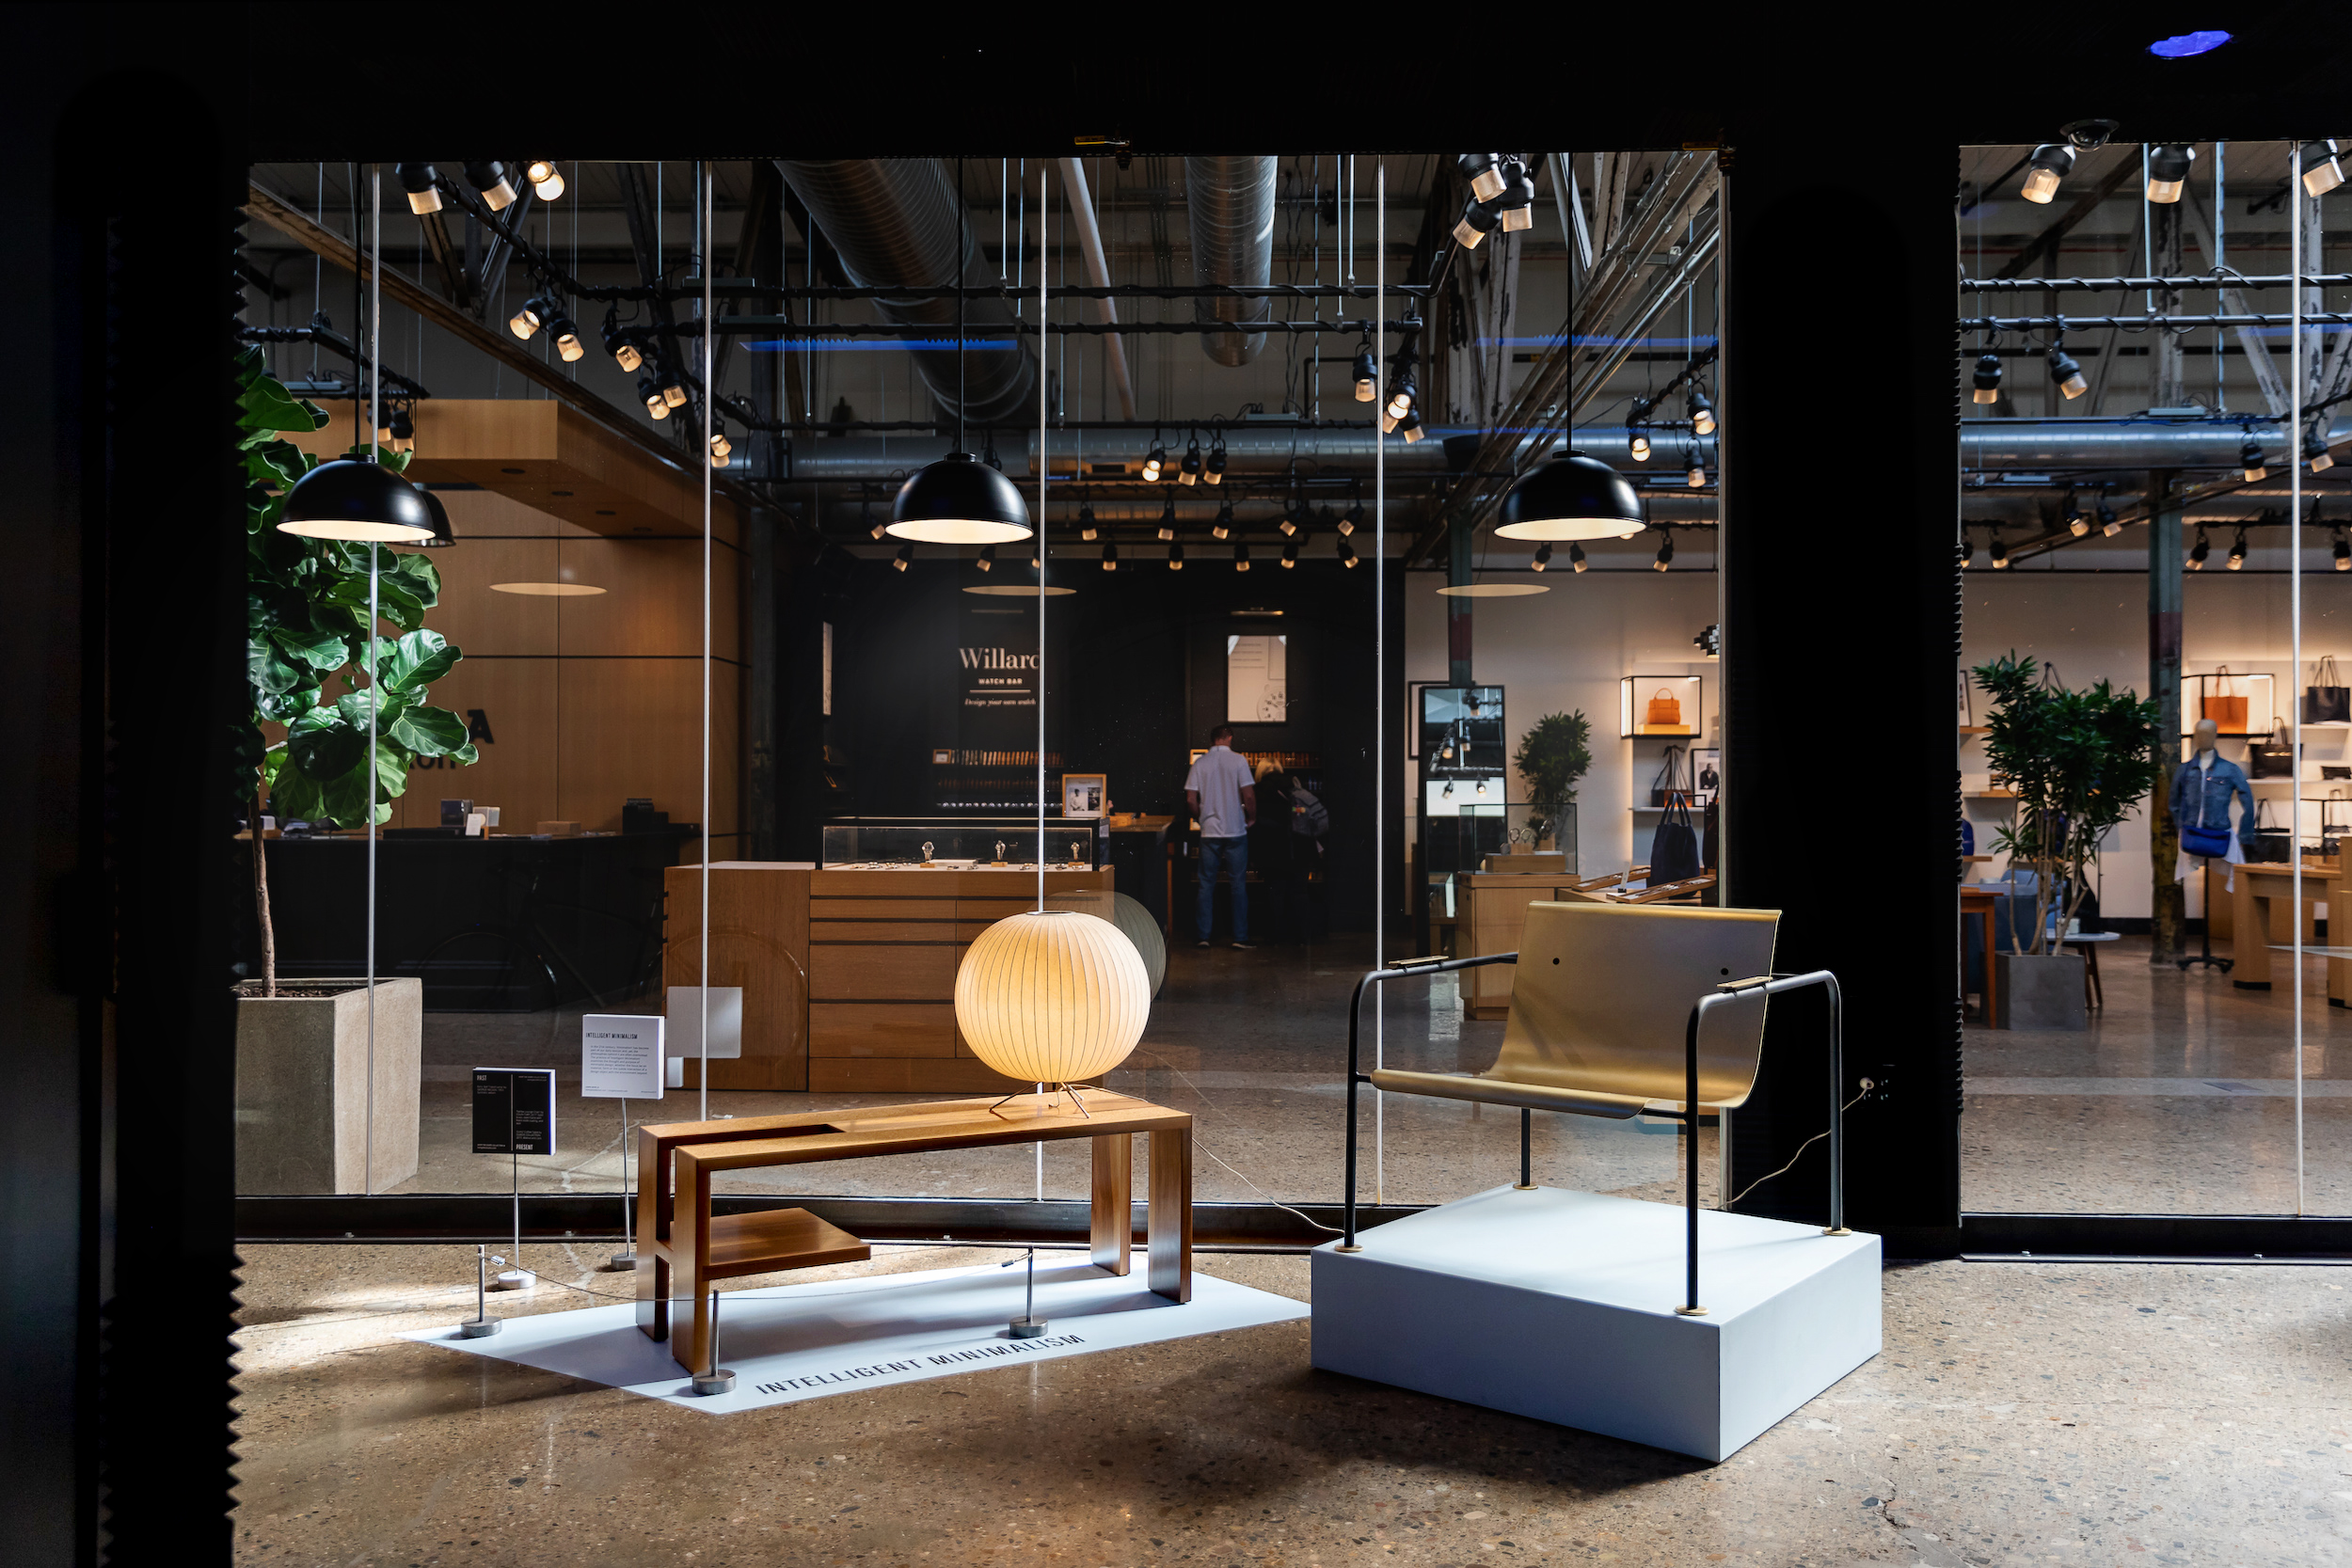 SHAPE Preview Exhibition at the Shinola Flagship Store for Detroit Month of Design 2018. Featuring Works by George Nelson, DuBois Collection and Colin Tury.  Photo x Michelle and Chris Gerard.